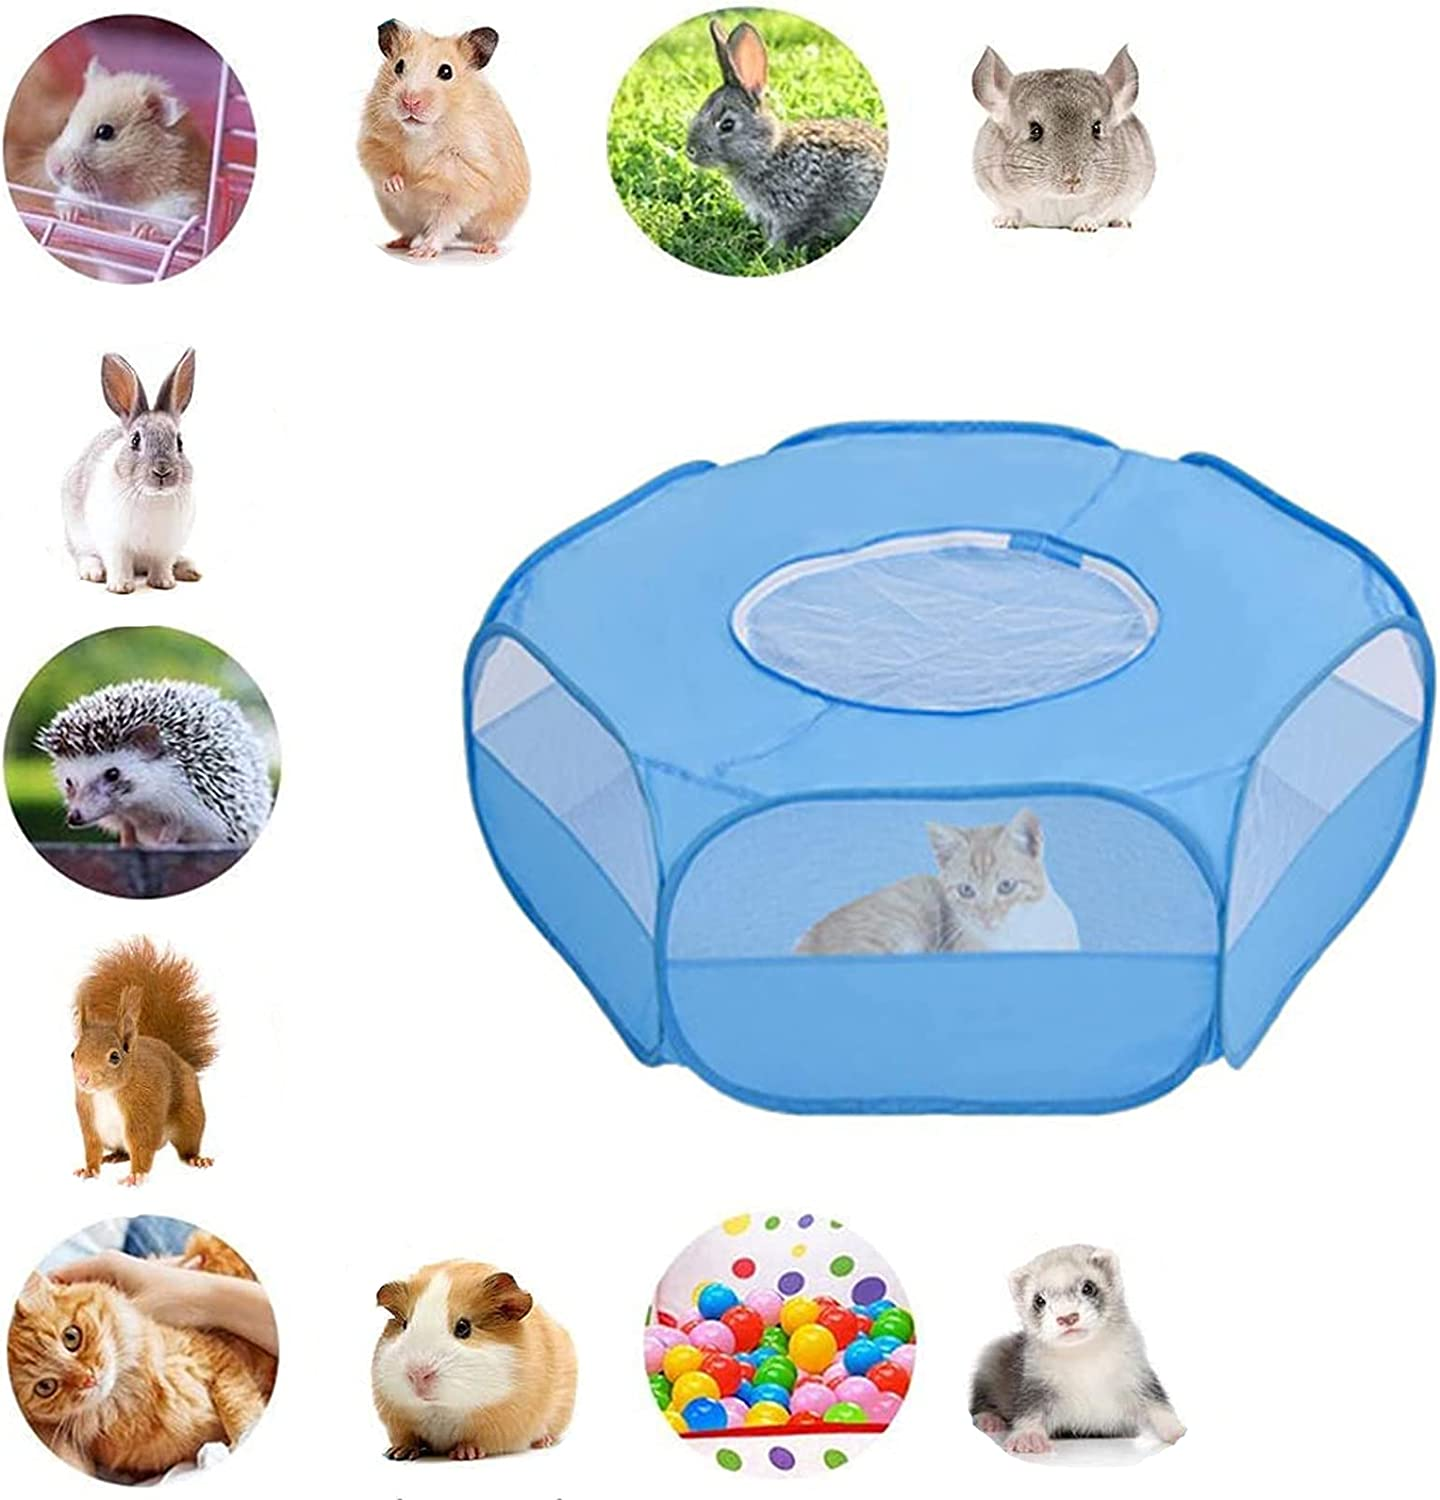 Mantouxixi Small Animal Playpen Pet Cage Cover Esc with Max 48% OFF Anti Now on sale Top